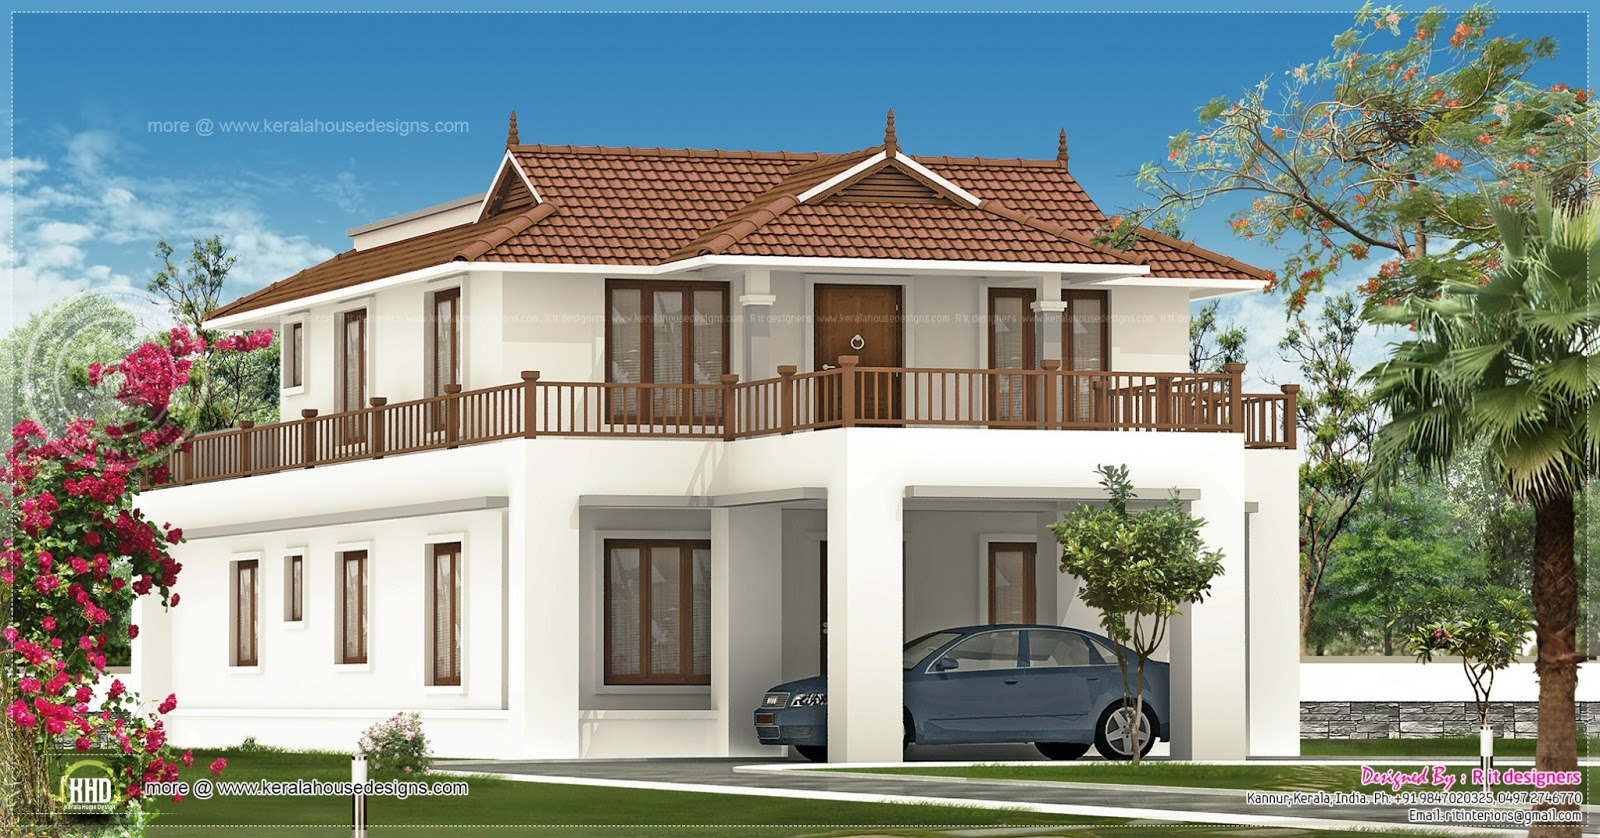 2820 square feet house exterior design home kerala plans for Exterior housing design